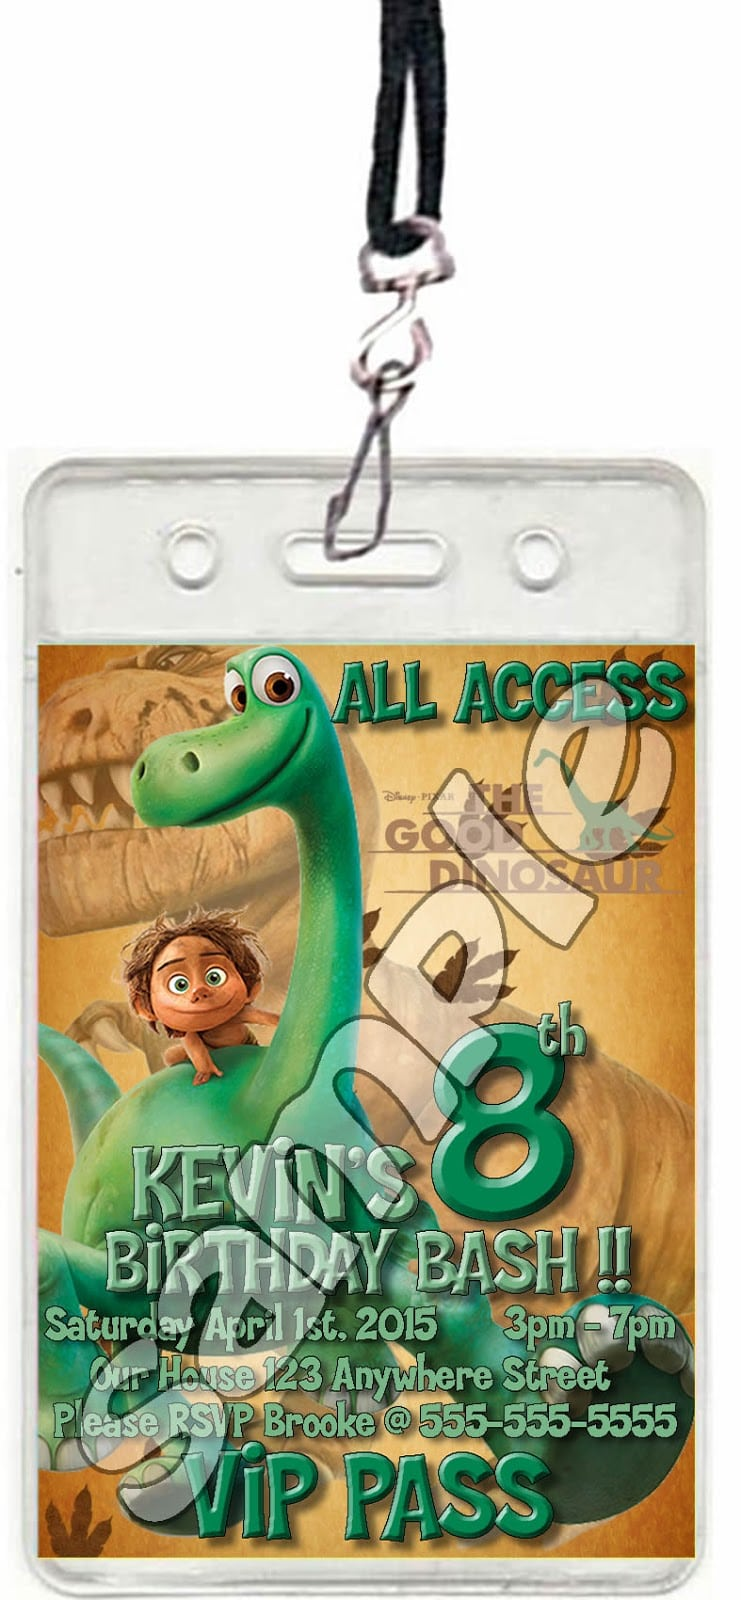 Reel Party Invitations  The Good Dinosaur Complete Personalized